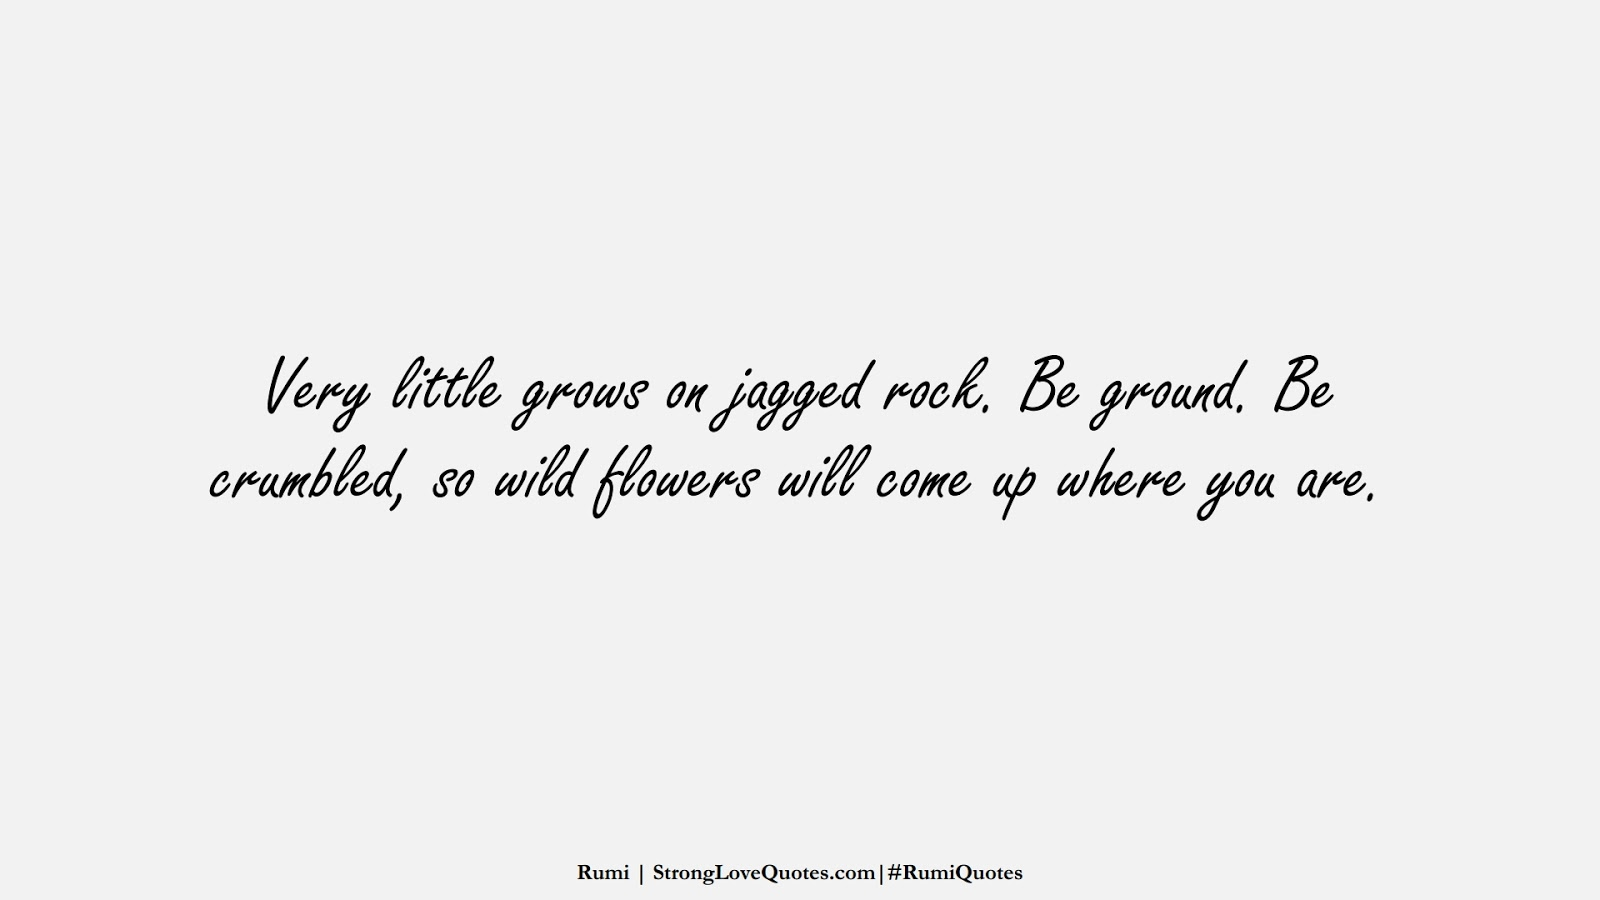 Very little grows on jagged rock. Be ground. Be crumbled, so wild flowers will come up where you are. (Rumi);  #RumiQuotes